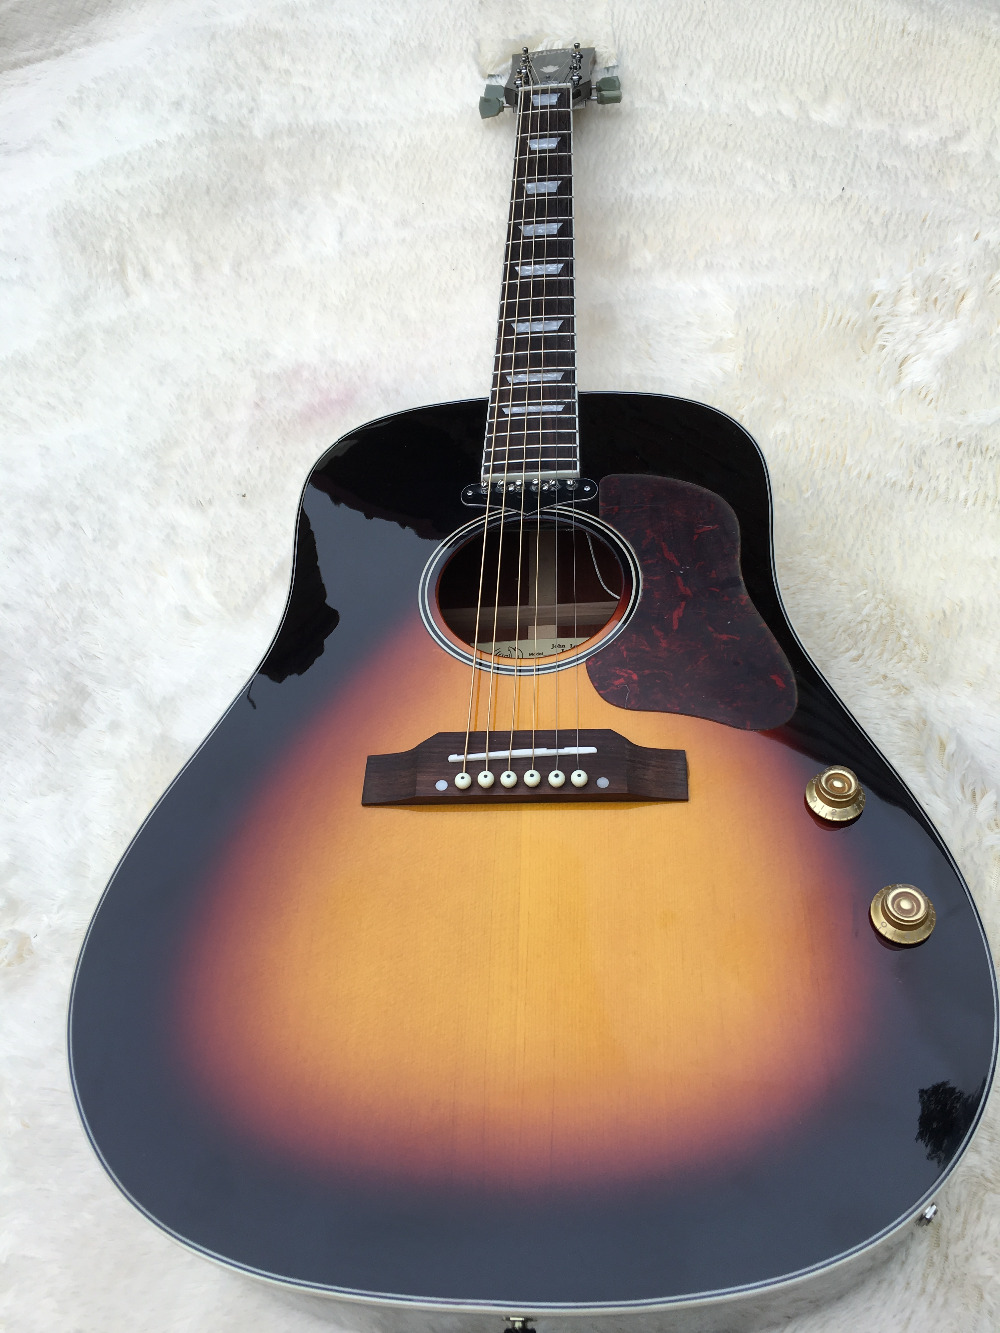 2016 New + Factory + Chinese 160 vintage VS Acoustic guitar John lennon sunburst J160 acoustic guitar with sound hole pickup все цены